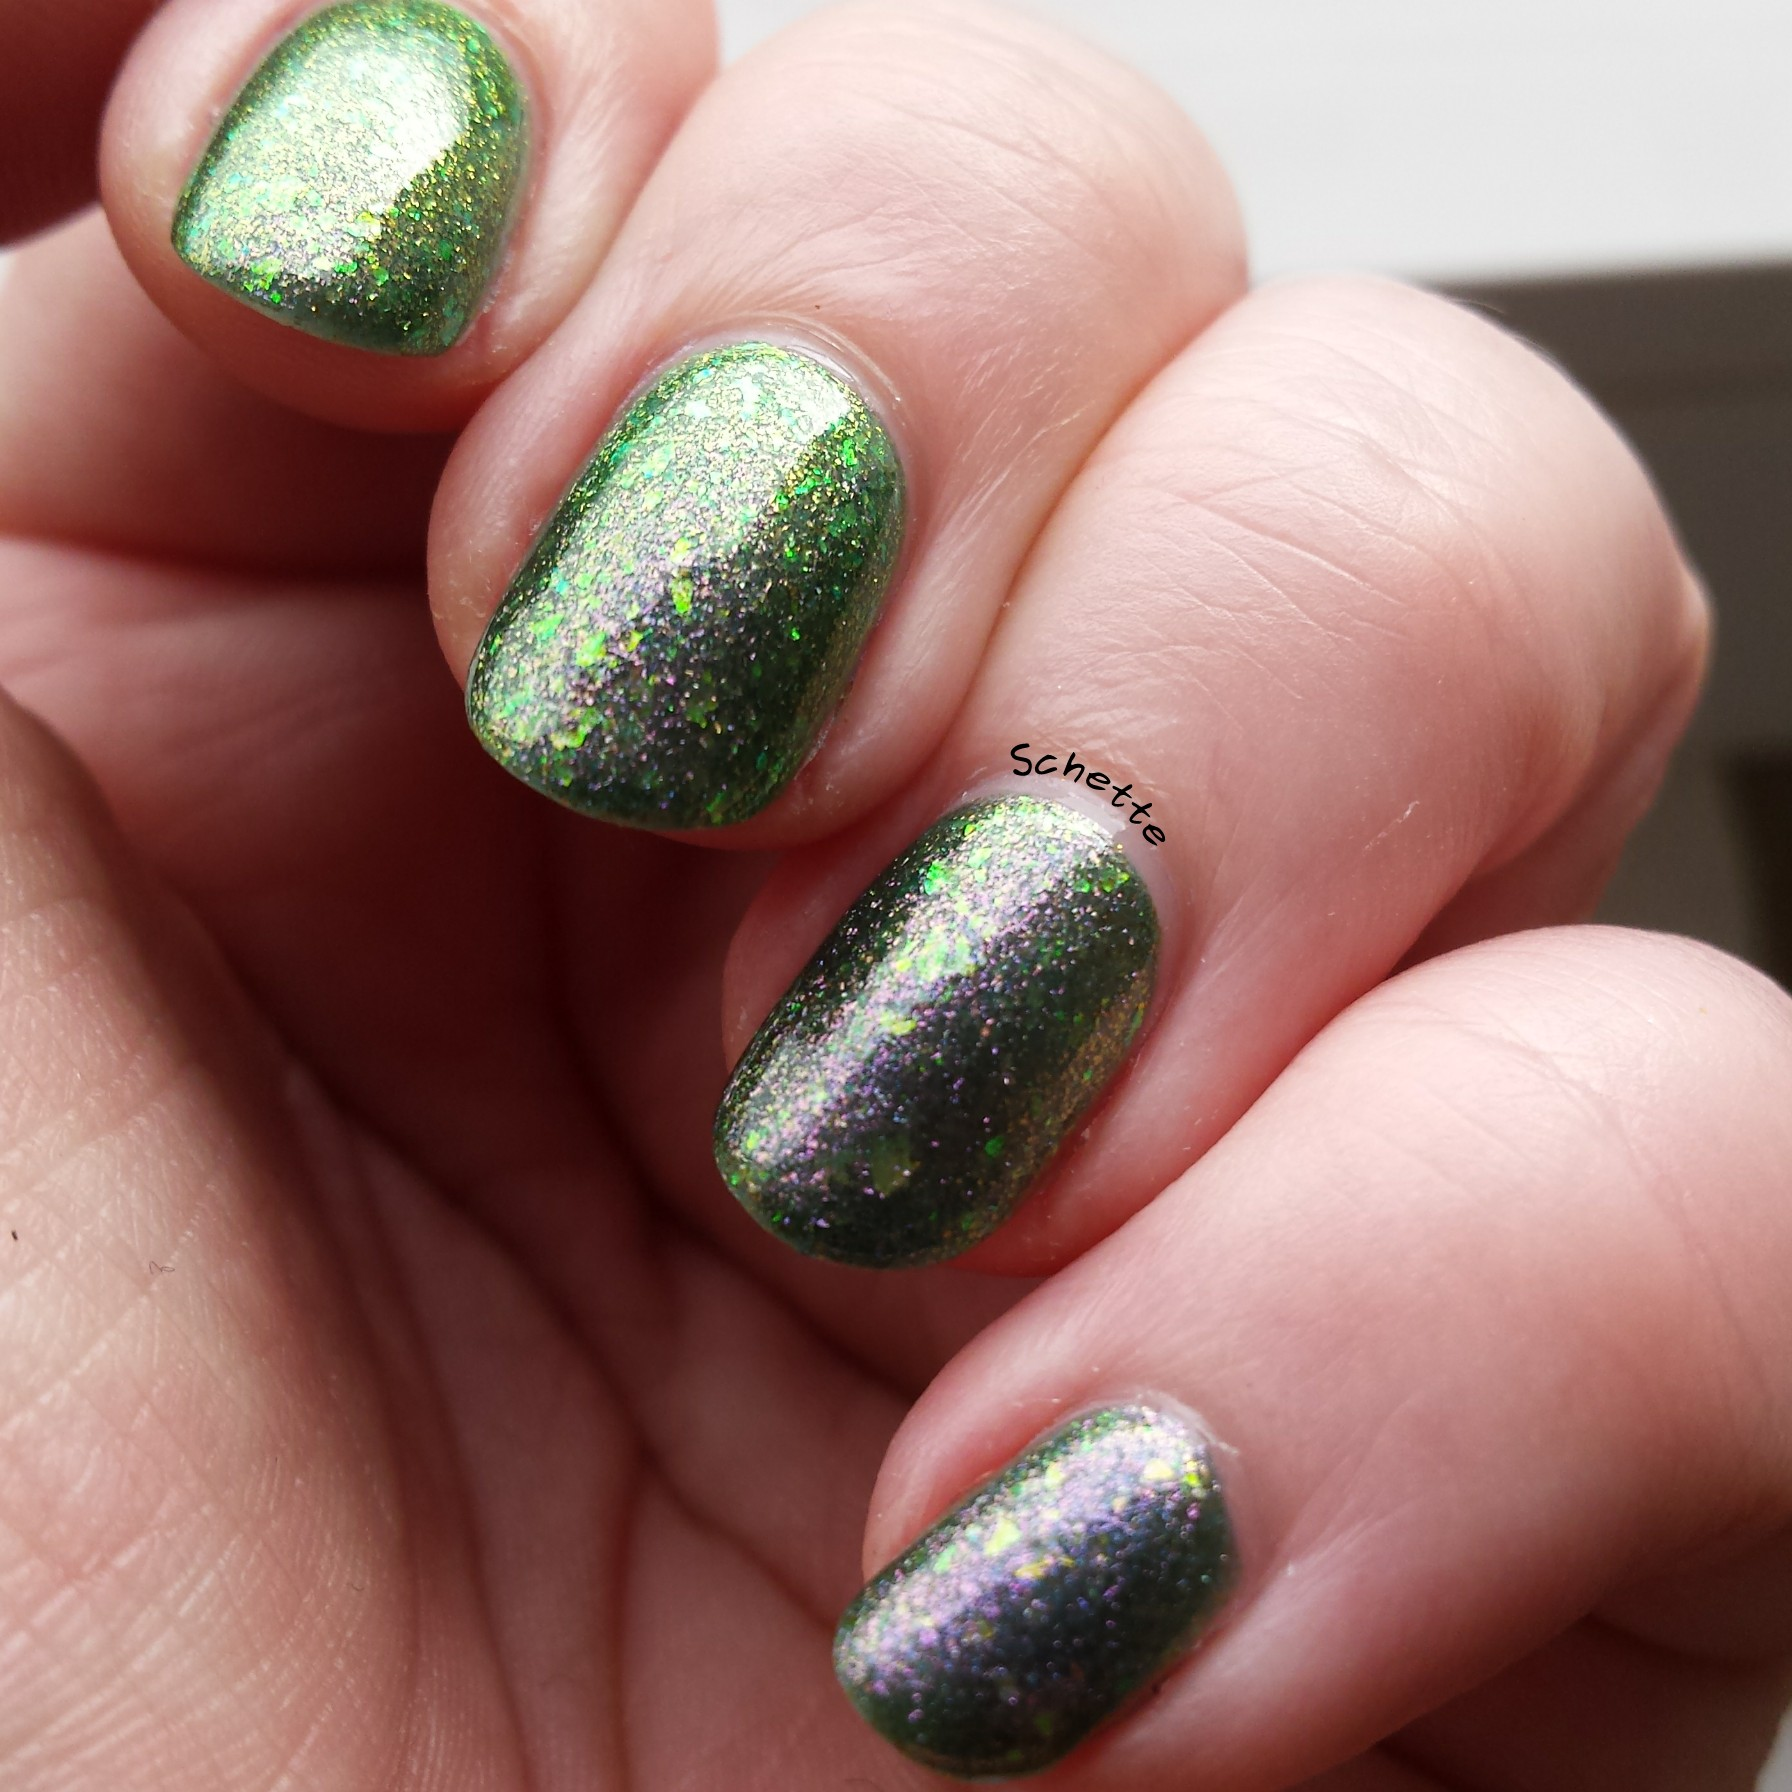 Lilypad Lacquer - Jumping for joy